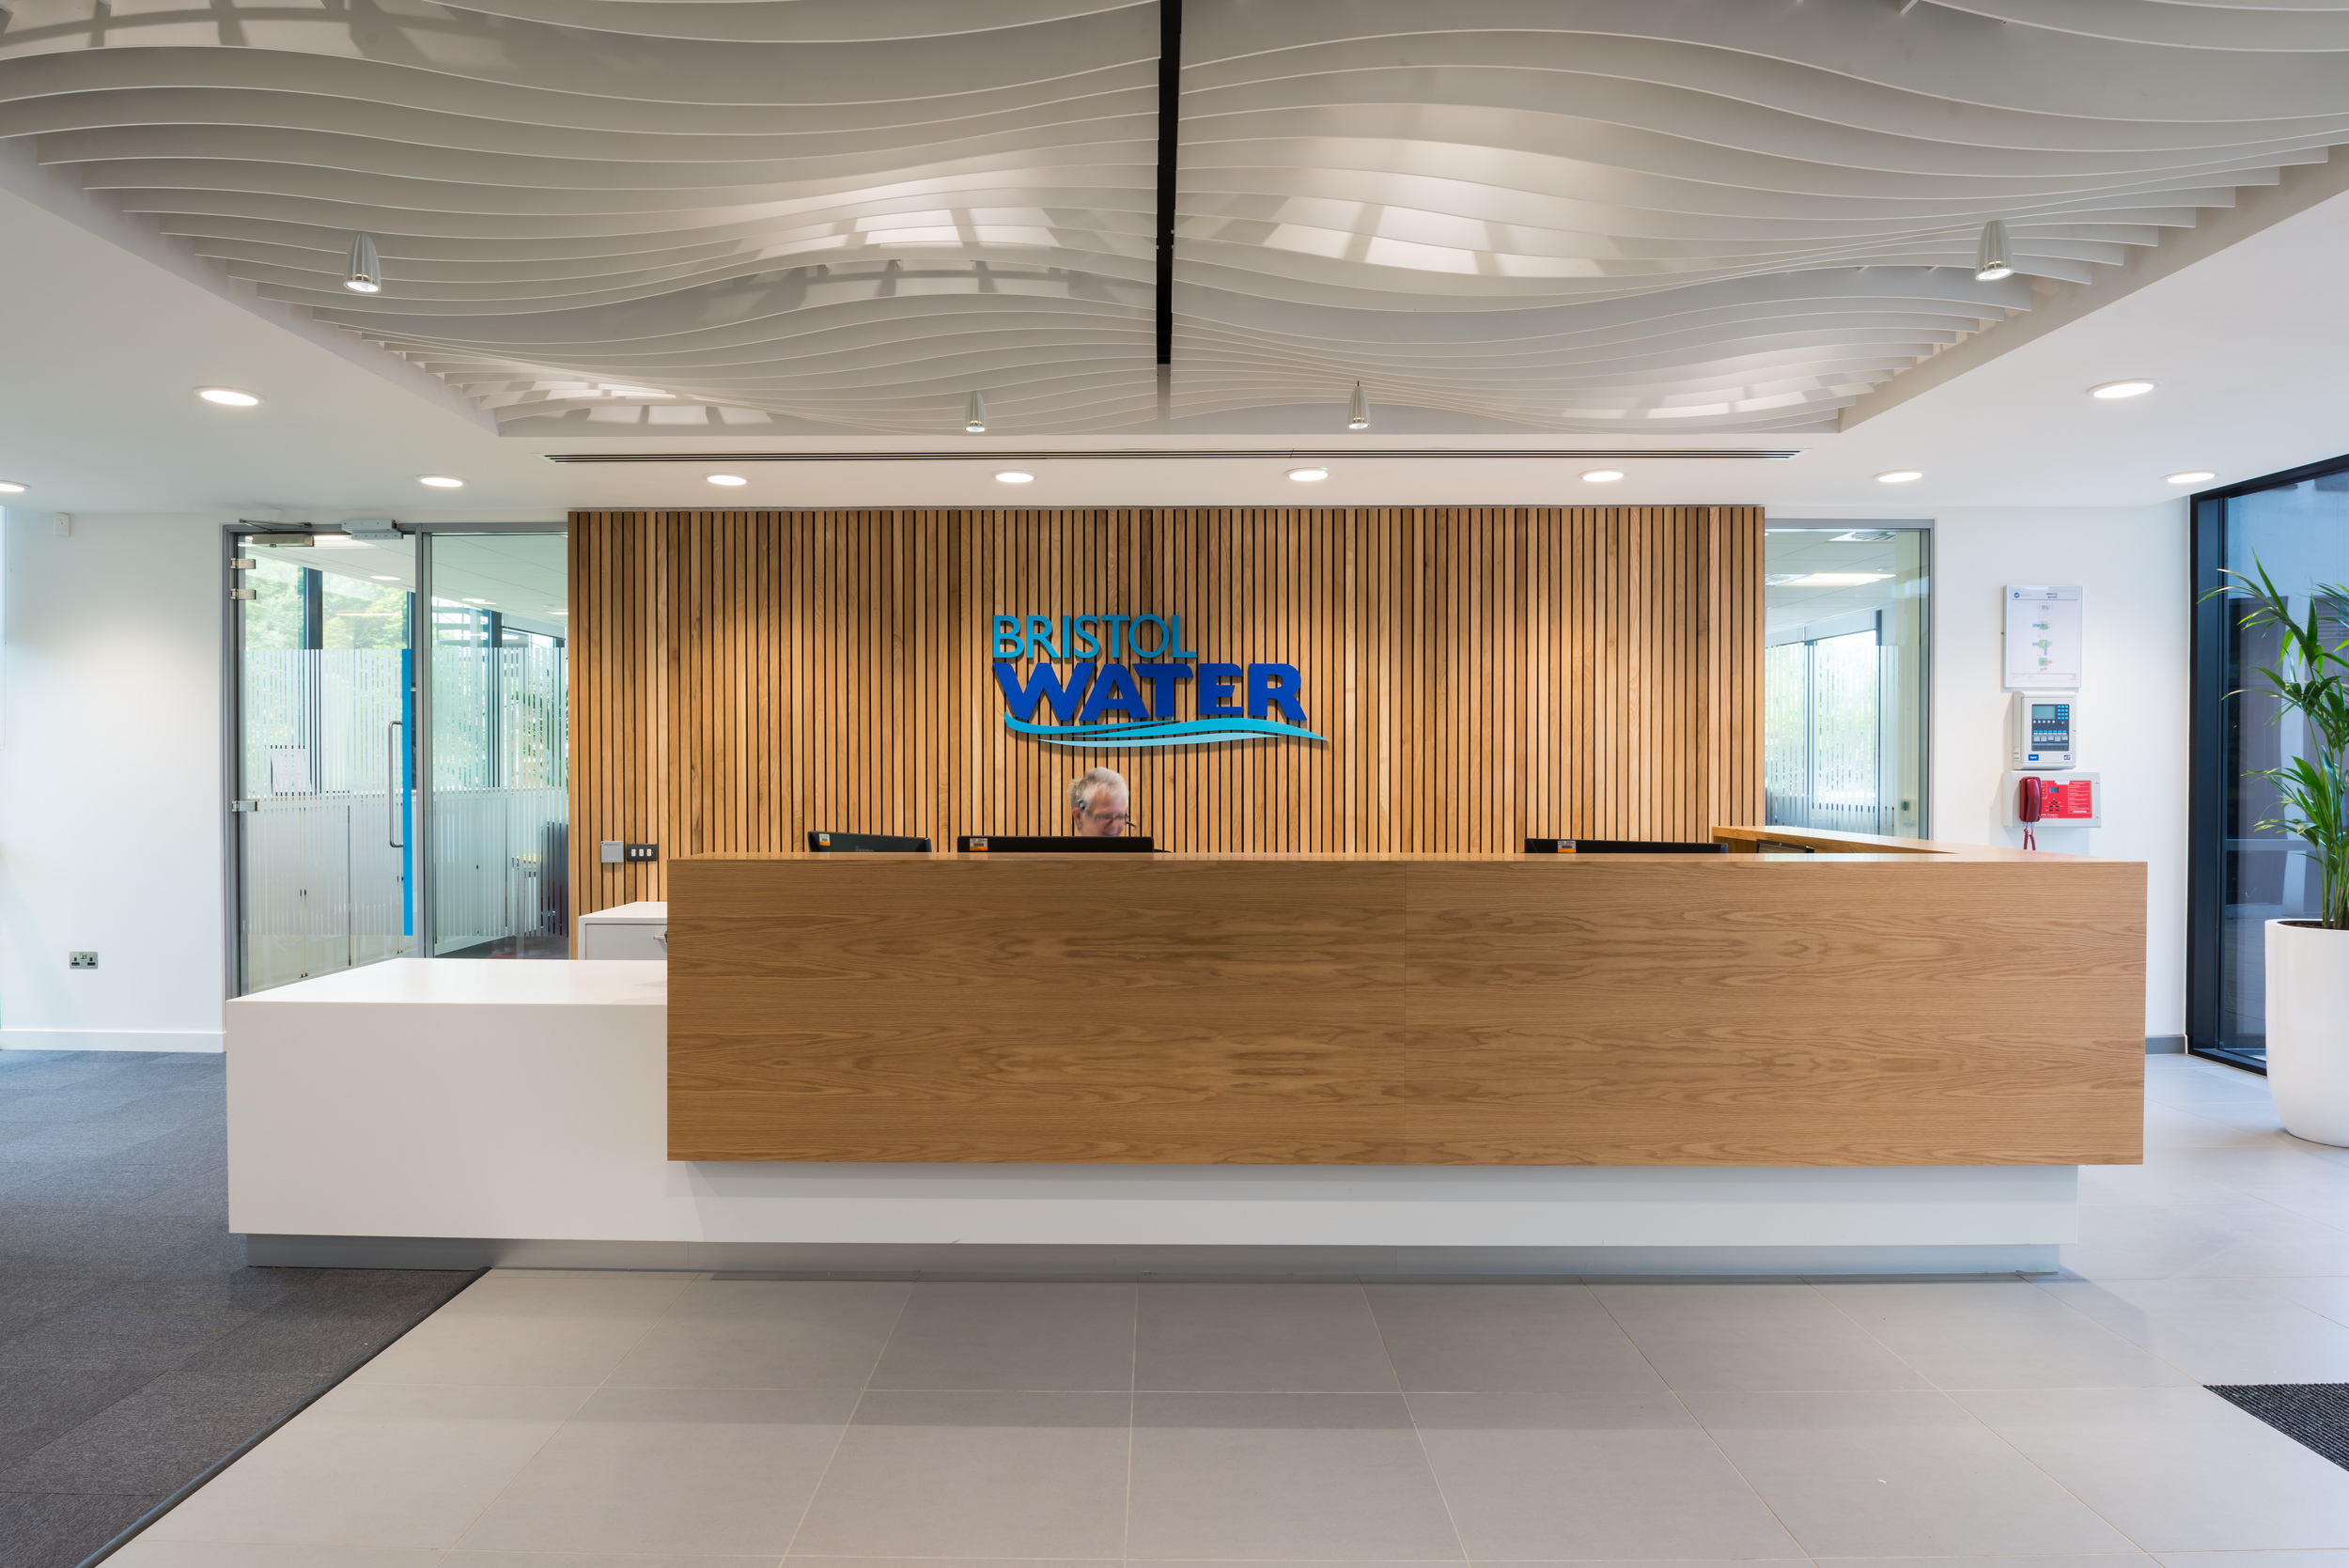 Reception area at Bristol Water HQ